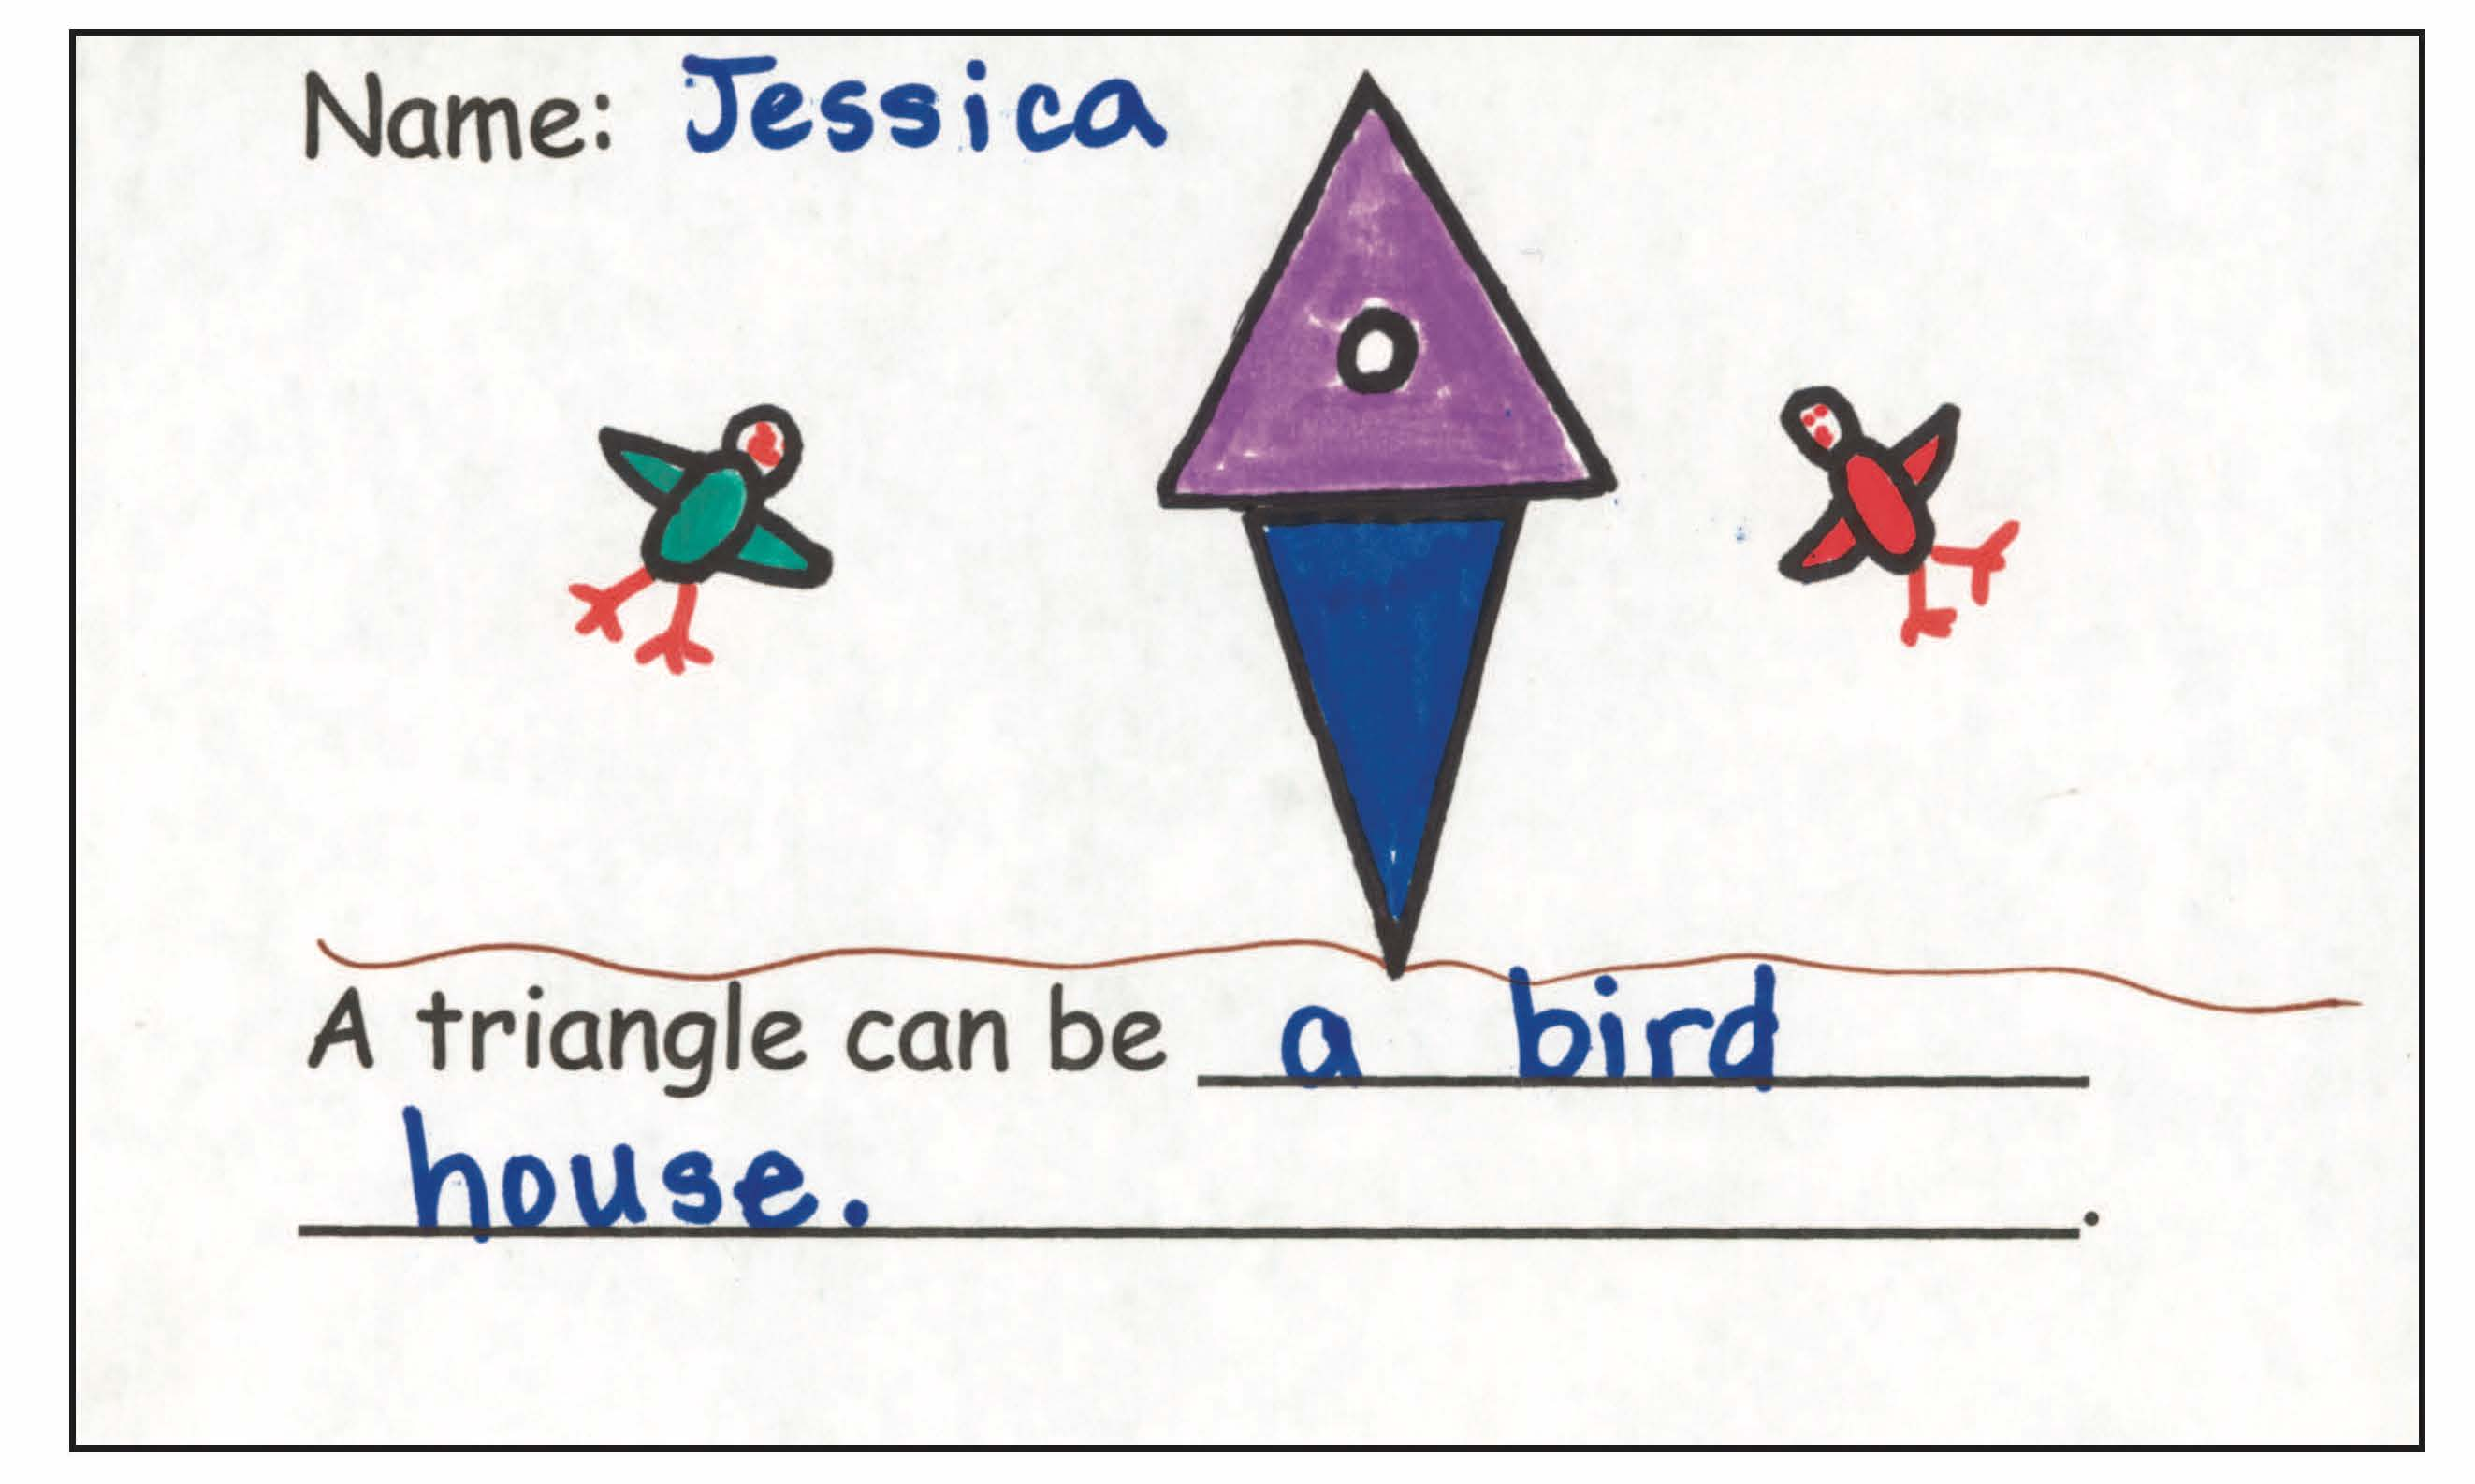 Figure 3. Jessica used two triangles—one for the birdhouse and one for the stand.